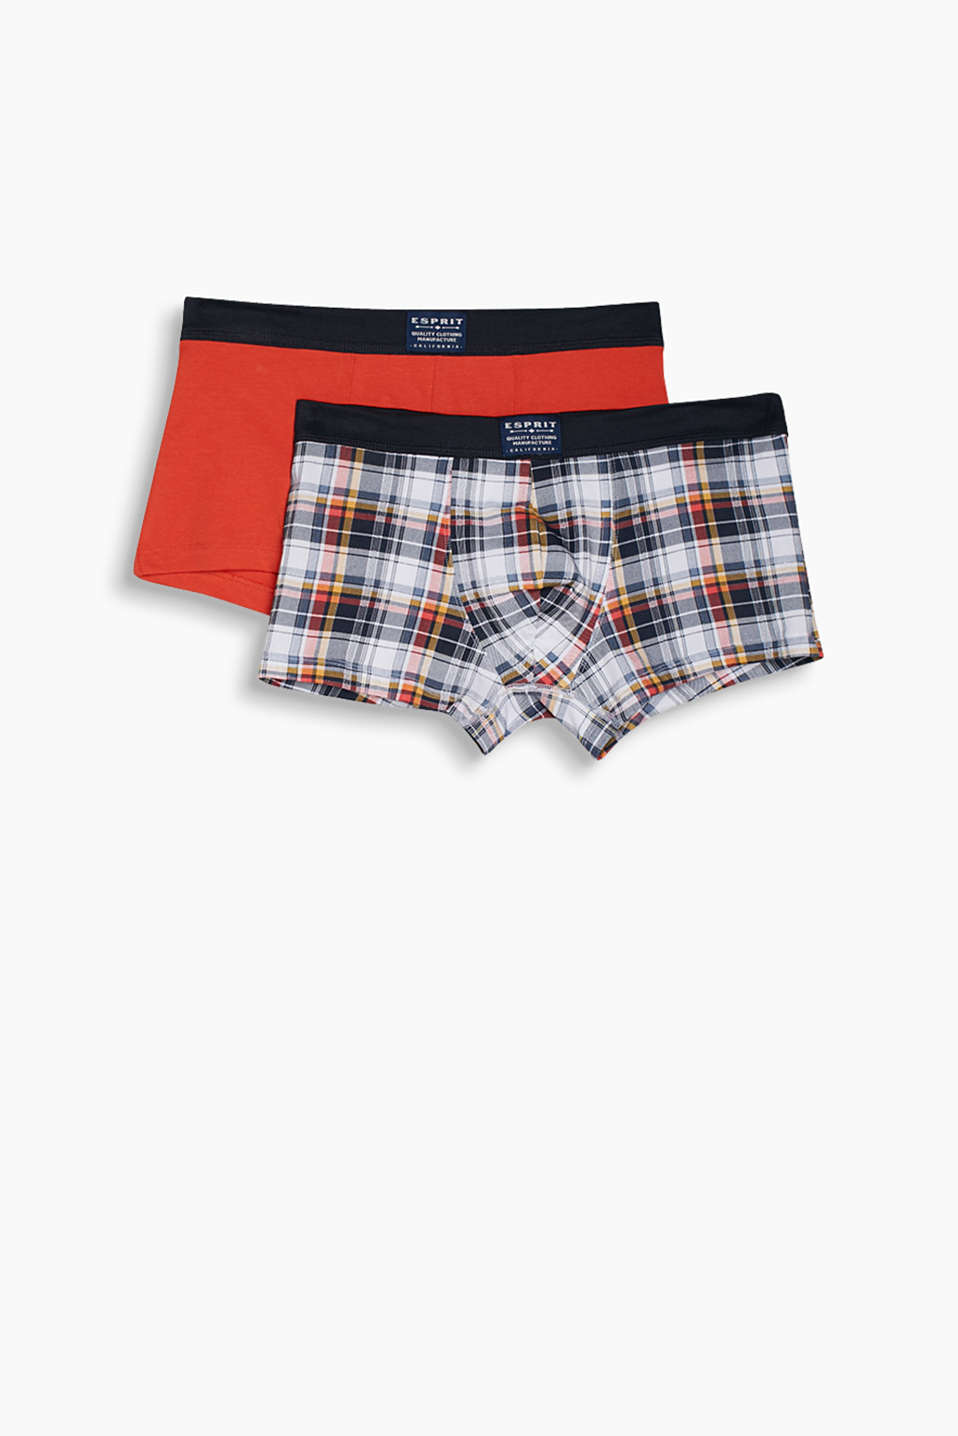 Boxers taille basse en coton stretch en version unie et à carreaux, en lot de 2 pratique